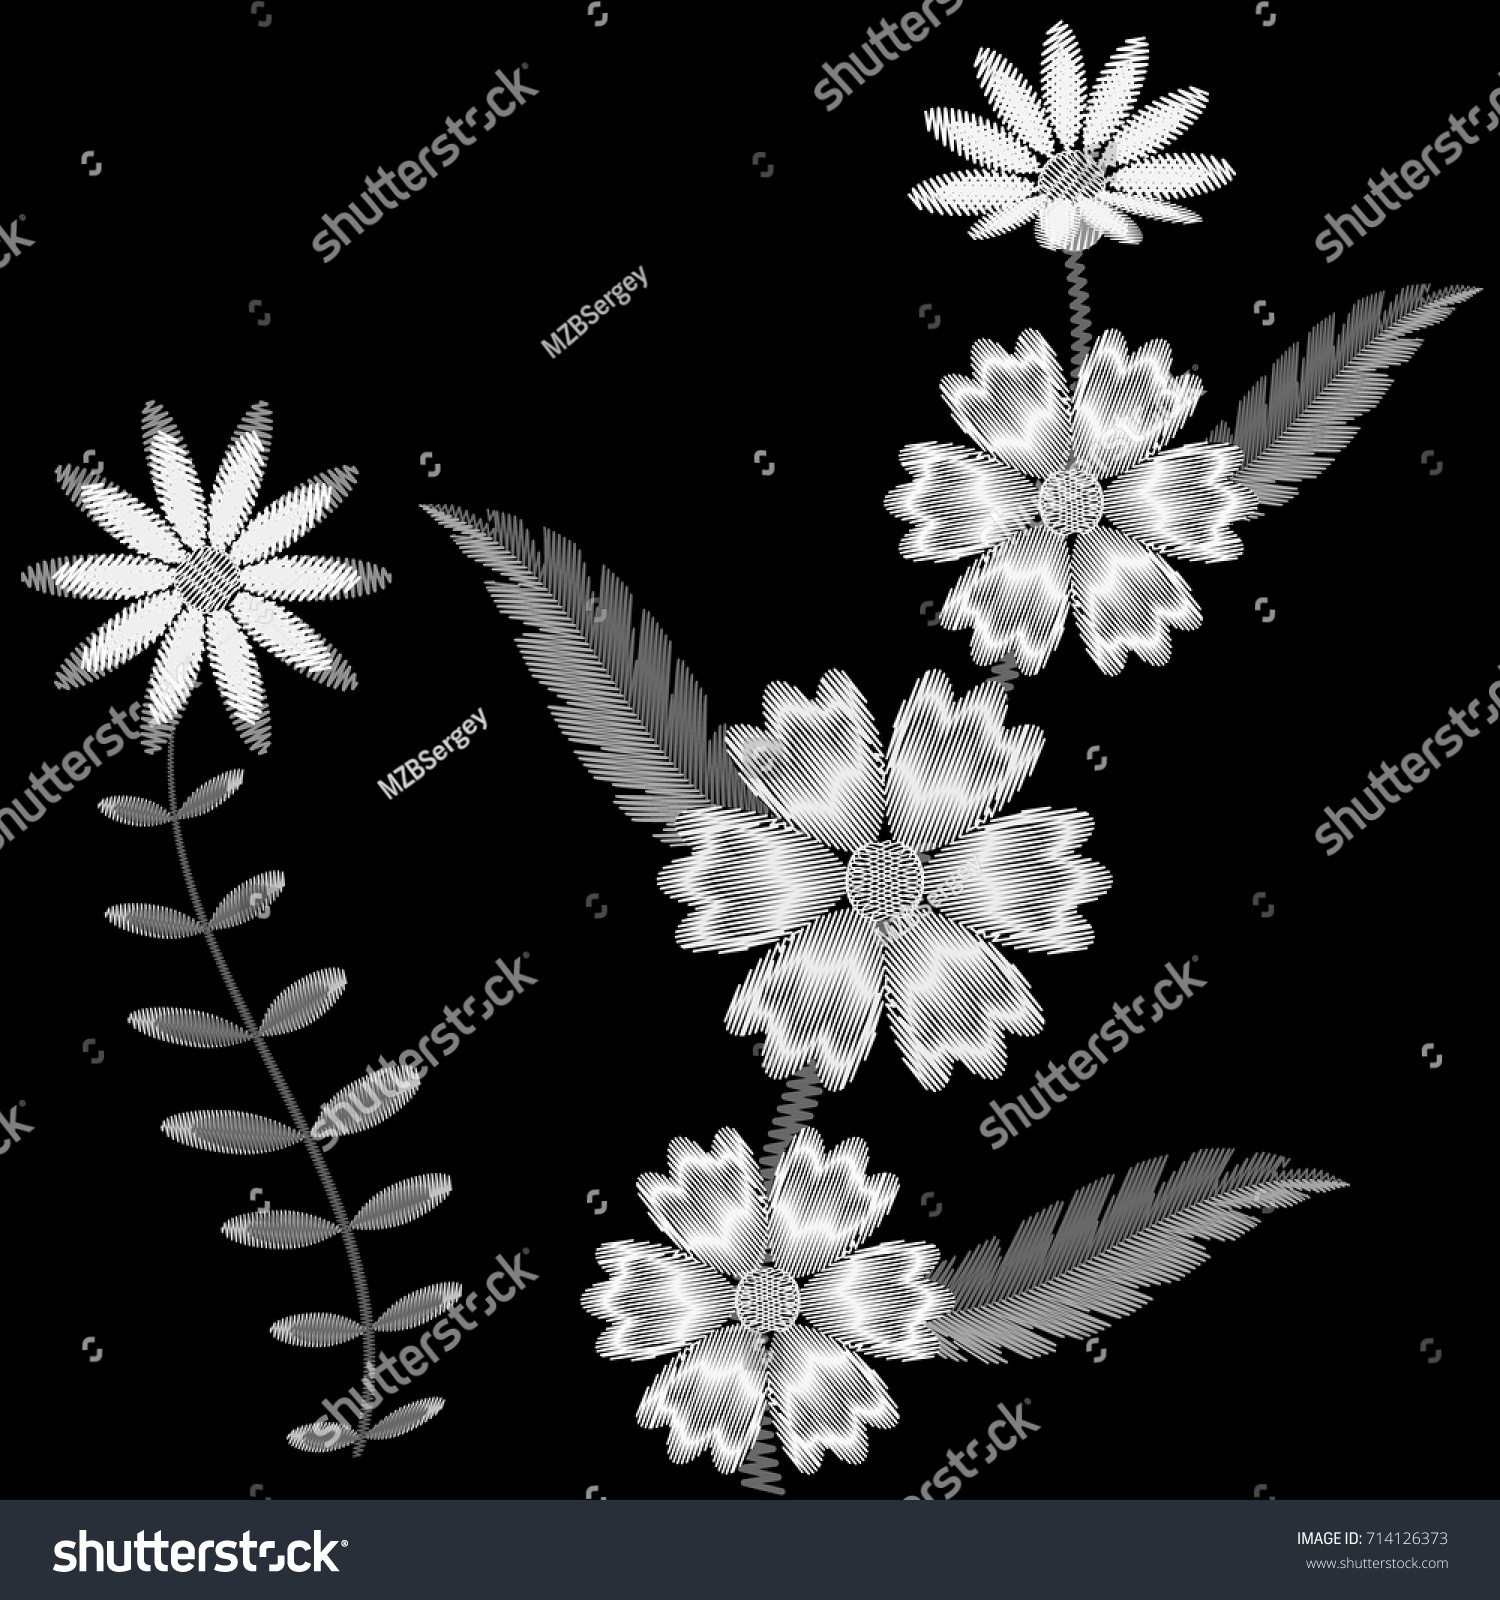 Embroidery flowers print on shirts embroidered stock vector embroidery of flowers for print on shirts the embroidered ornament from flower patterns on a bankloansurffo Images